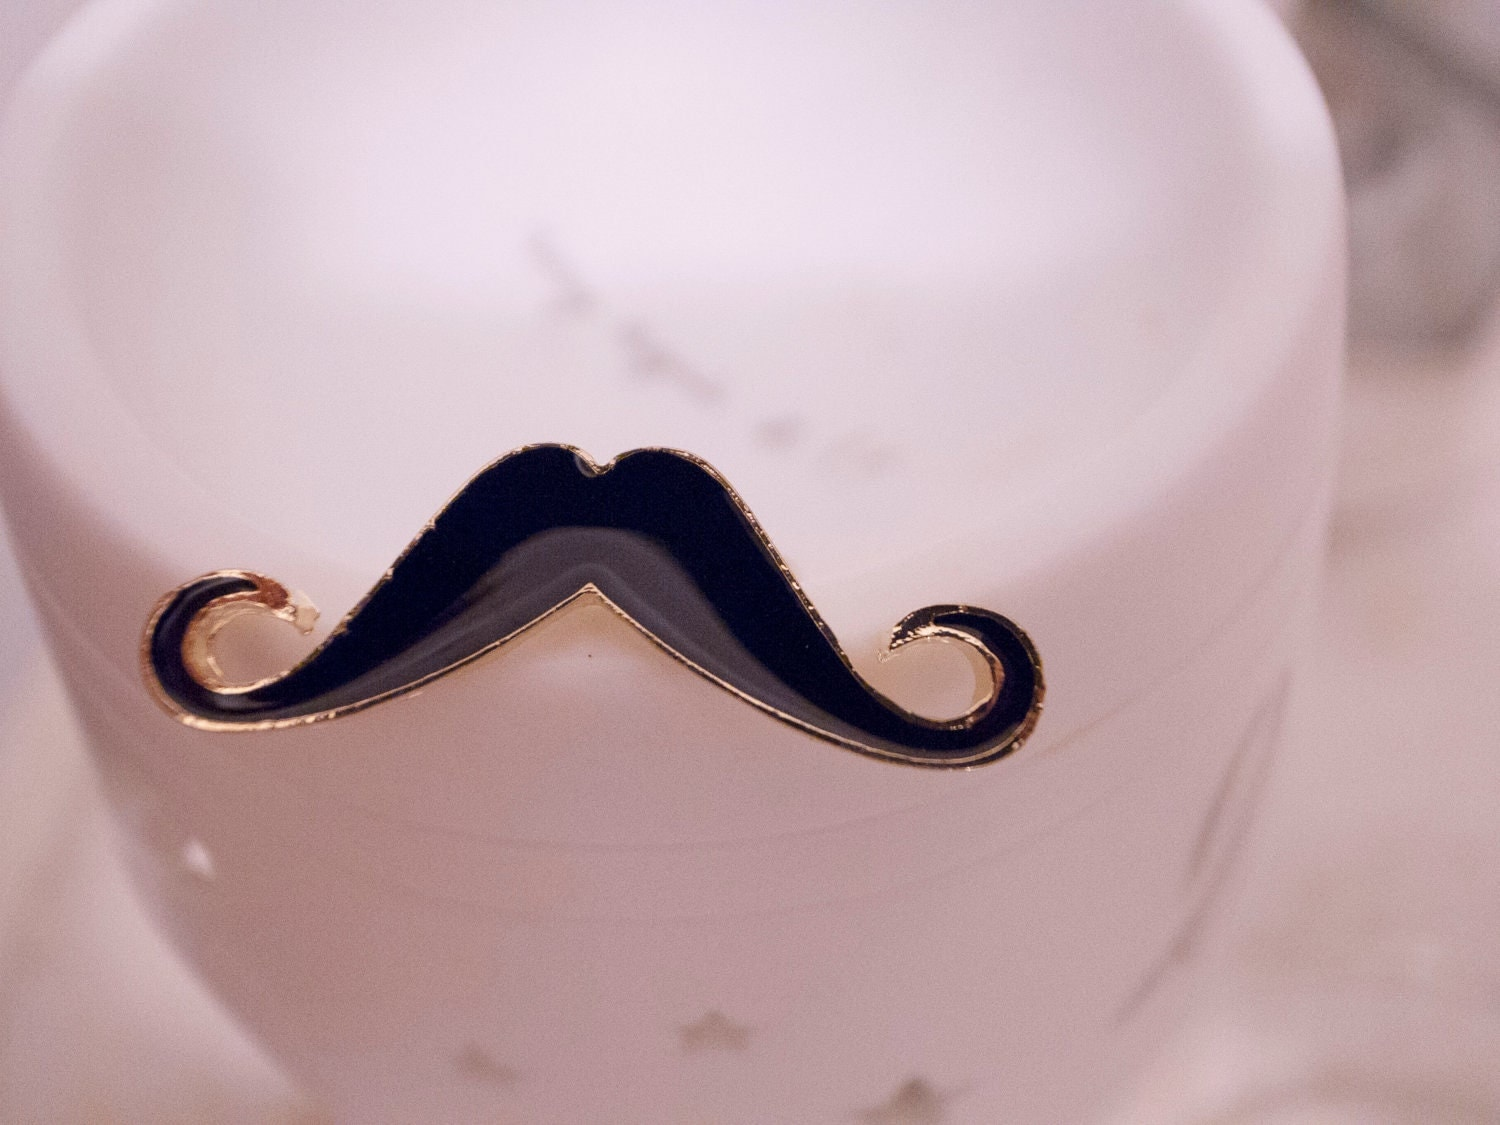 SALE -- LAST STOCK -- Funny and Chic Mustache Ring in Black - Size Adjustable